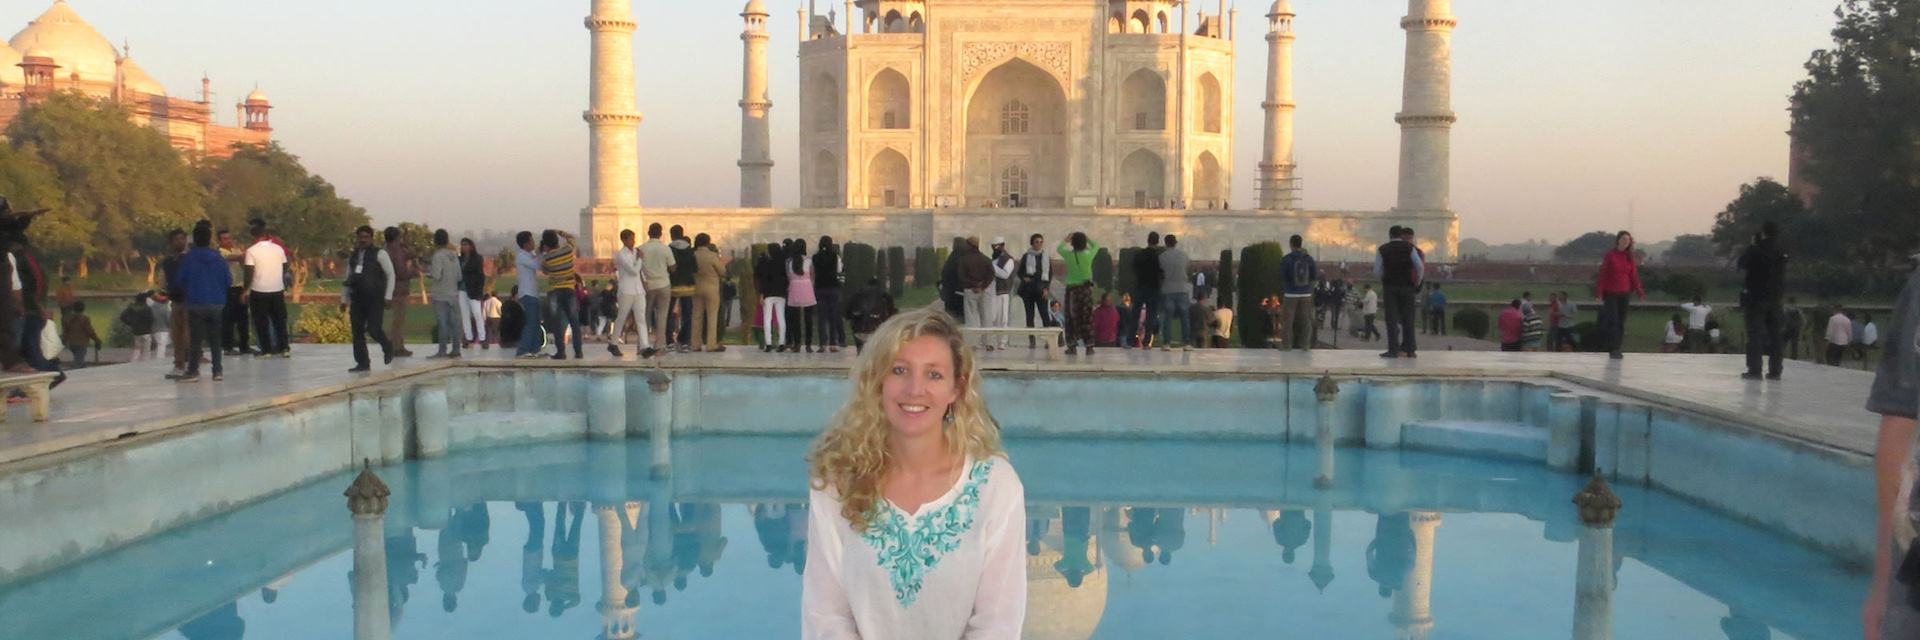 Hannah at the Taj Mahal in Agra, India